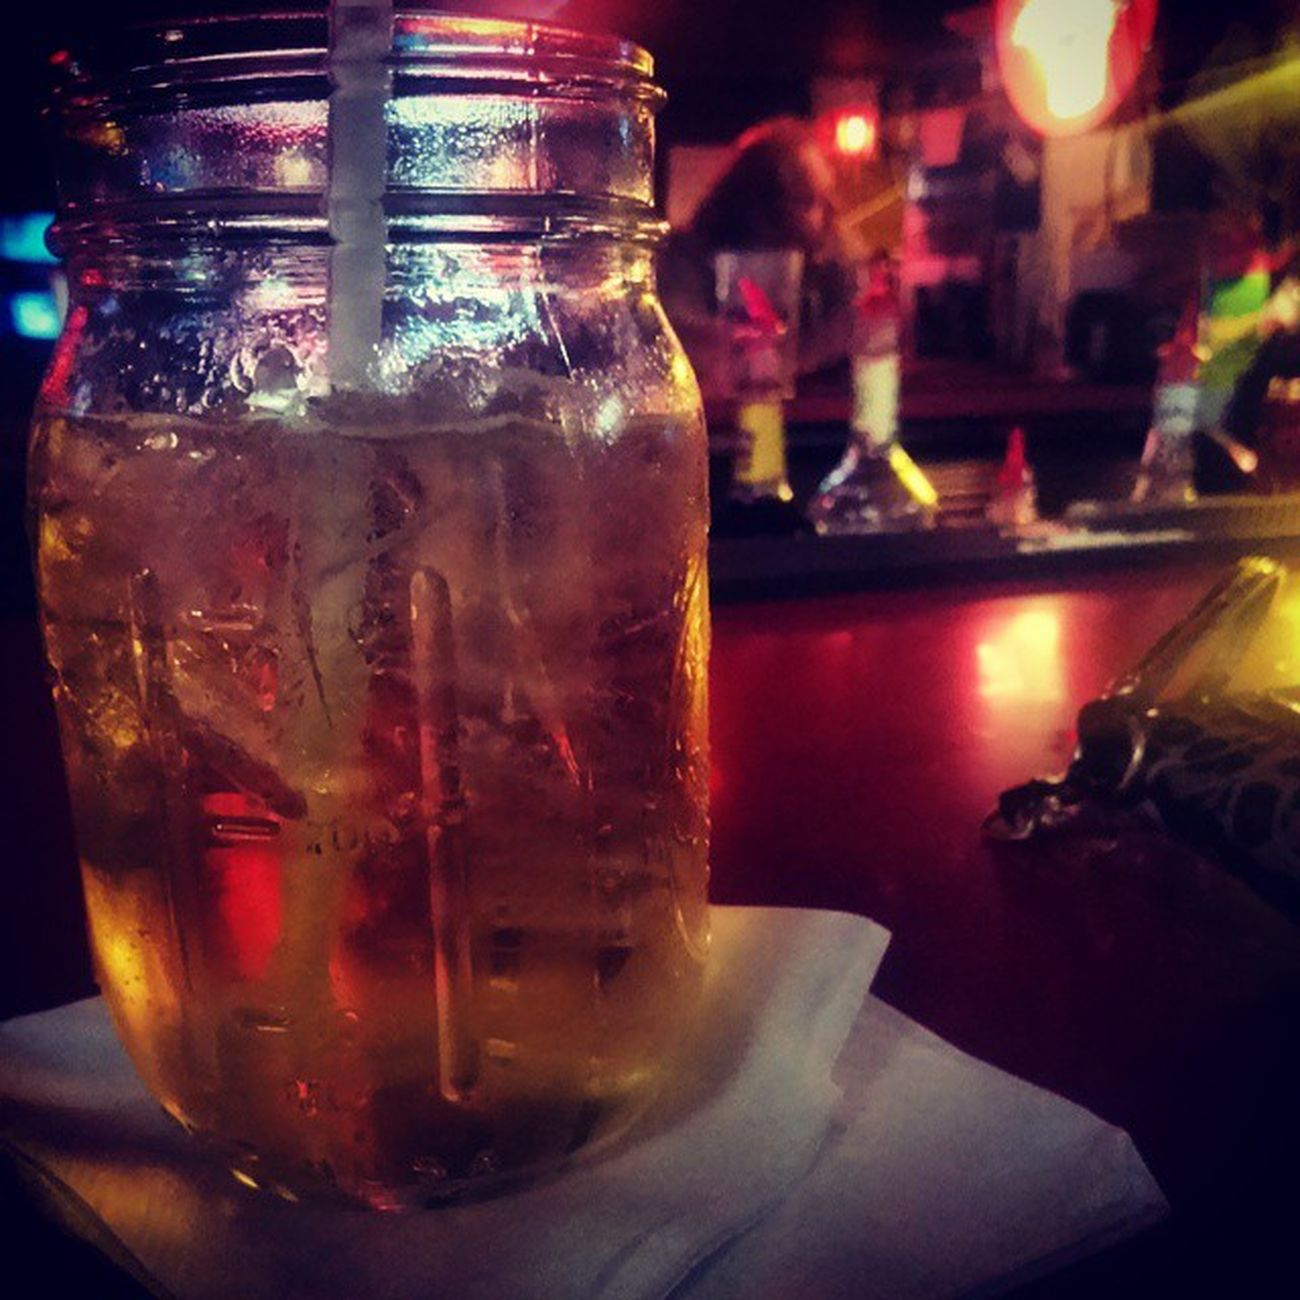 Dollys why have i never been here before?! Already free drinks from the fellers at the bar:) AmericanHoney and ginger ale Southendgirls